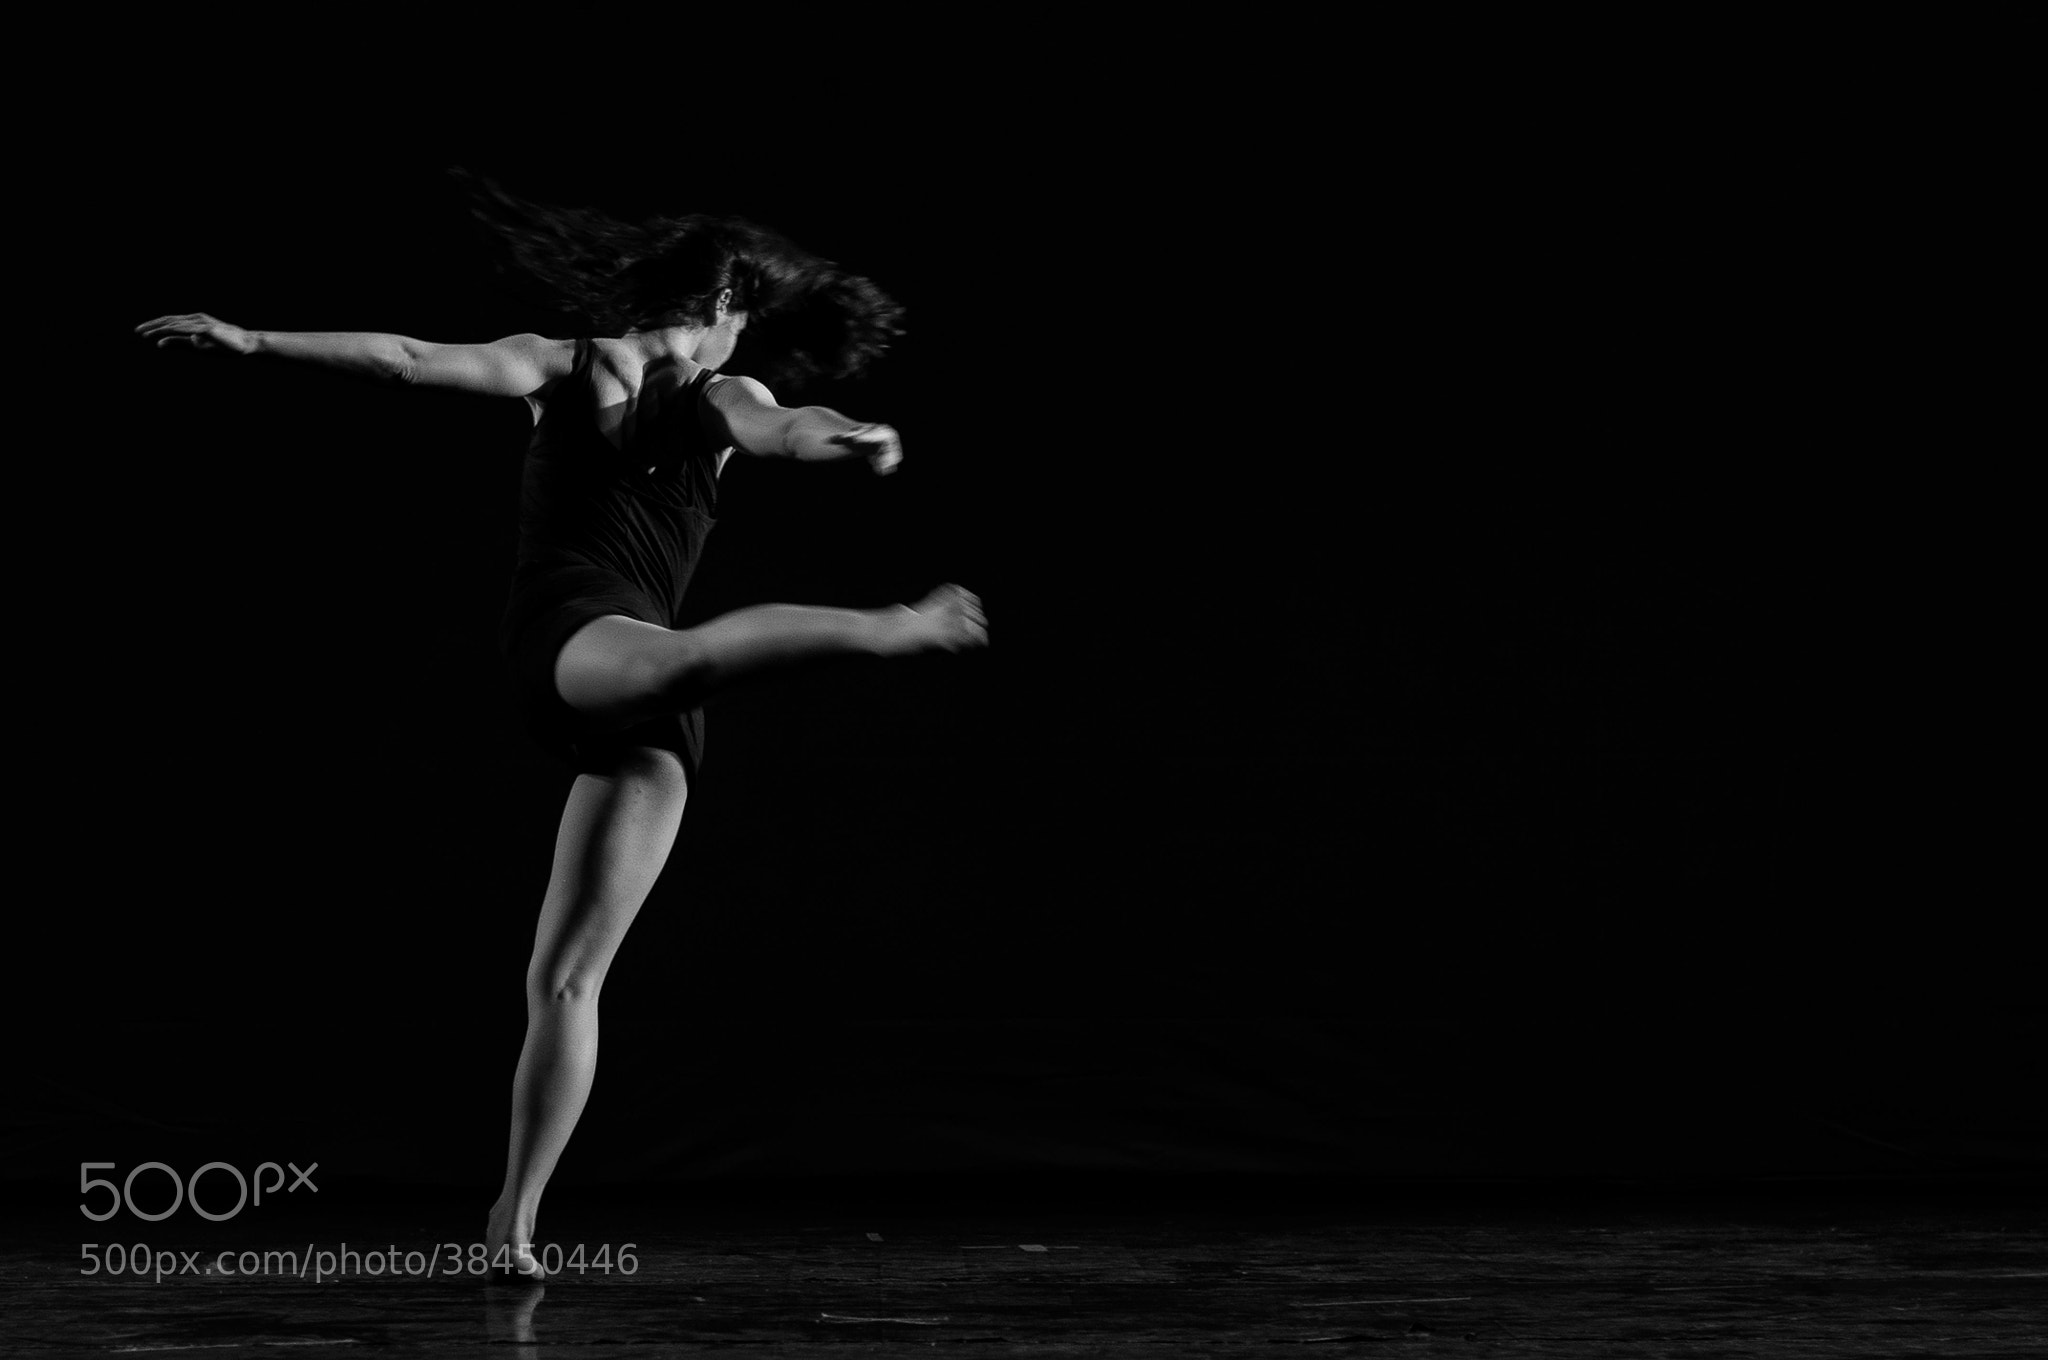 Photograph Ballerina by Fabio La Monica on 500px